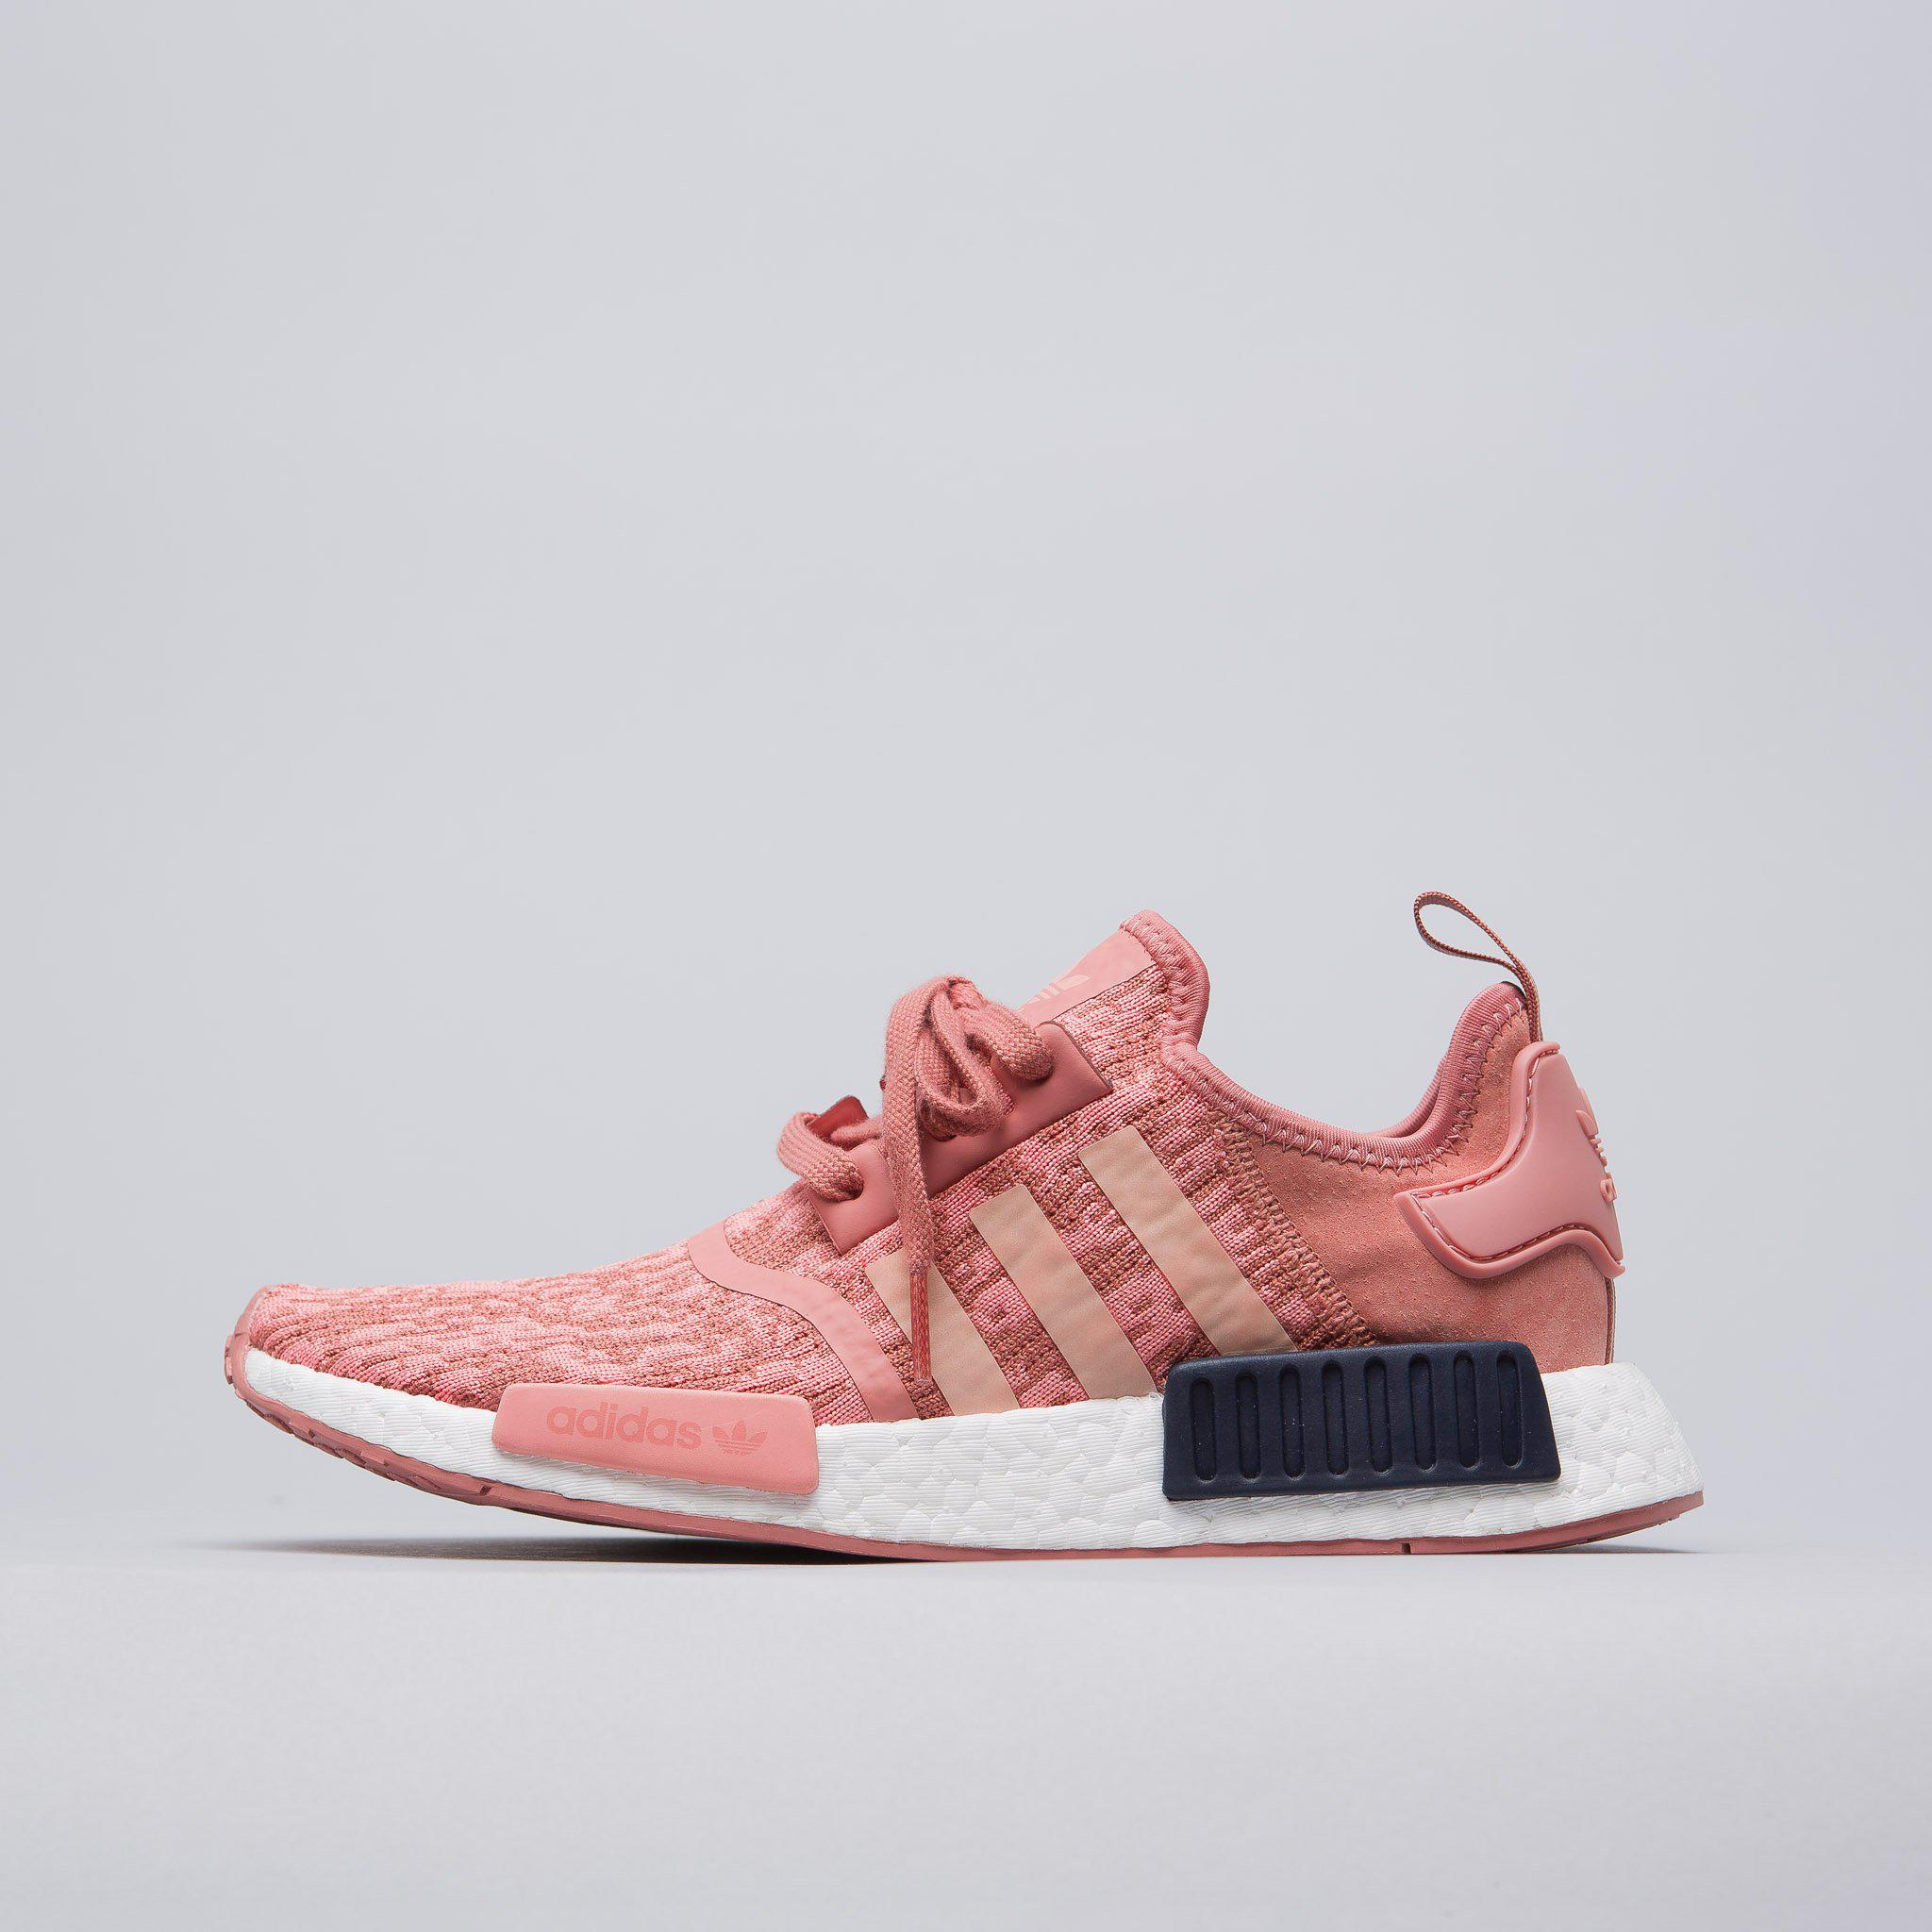 Lyst - adidas Women s Nmd R1 In Raw Pink in Pink for Men c4c4377510